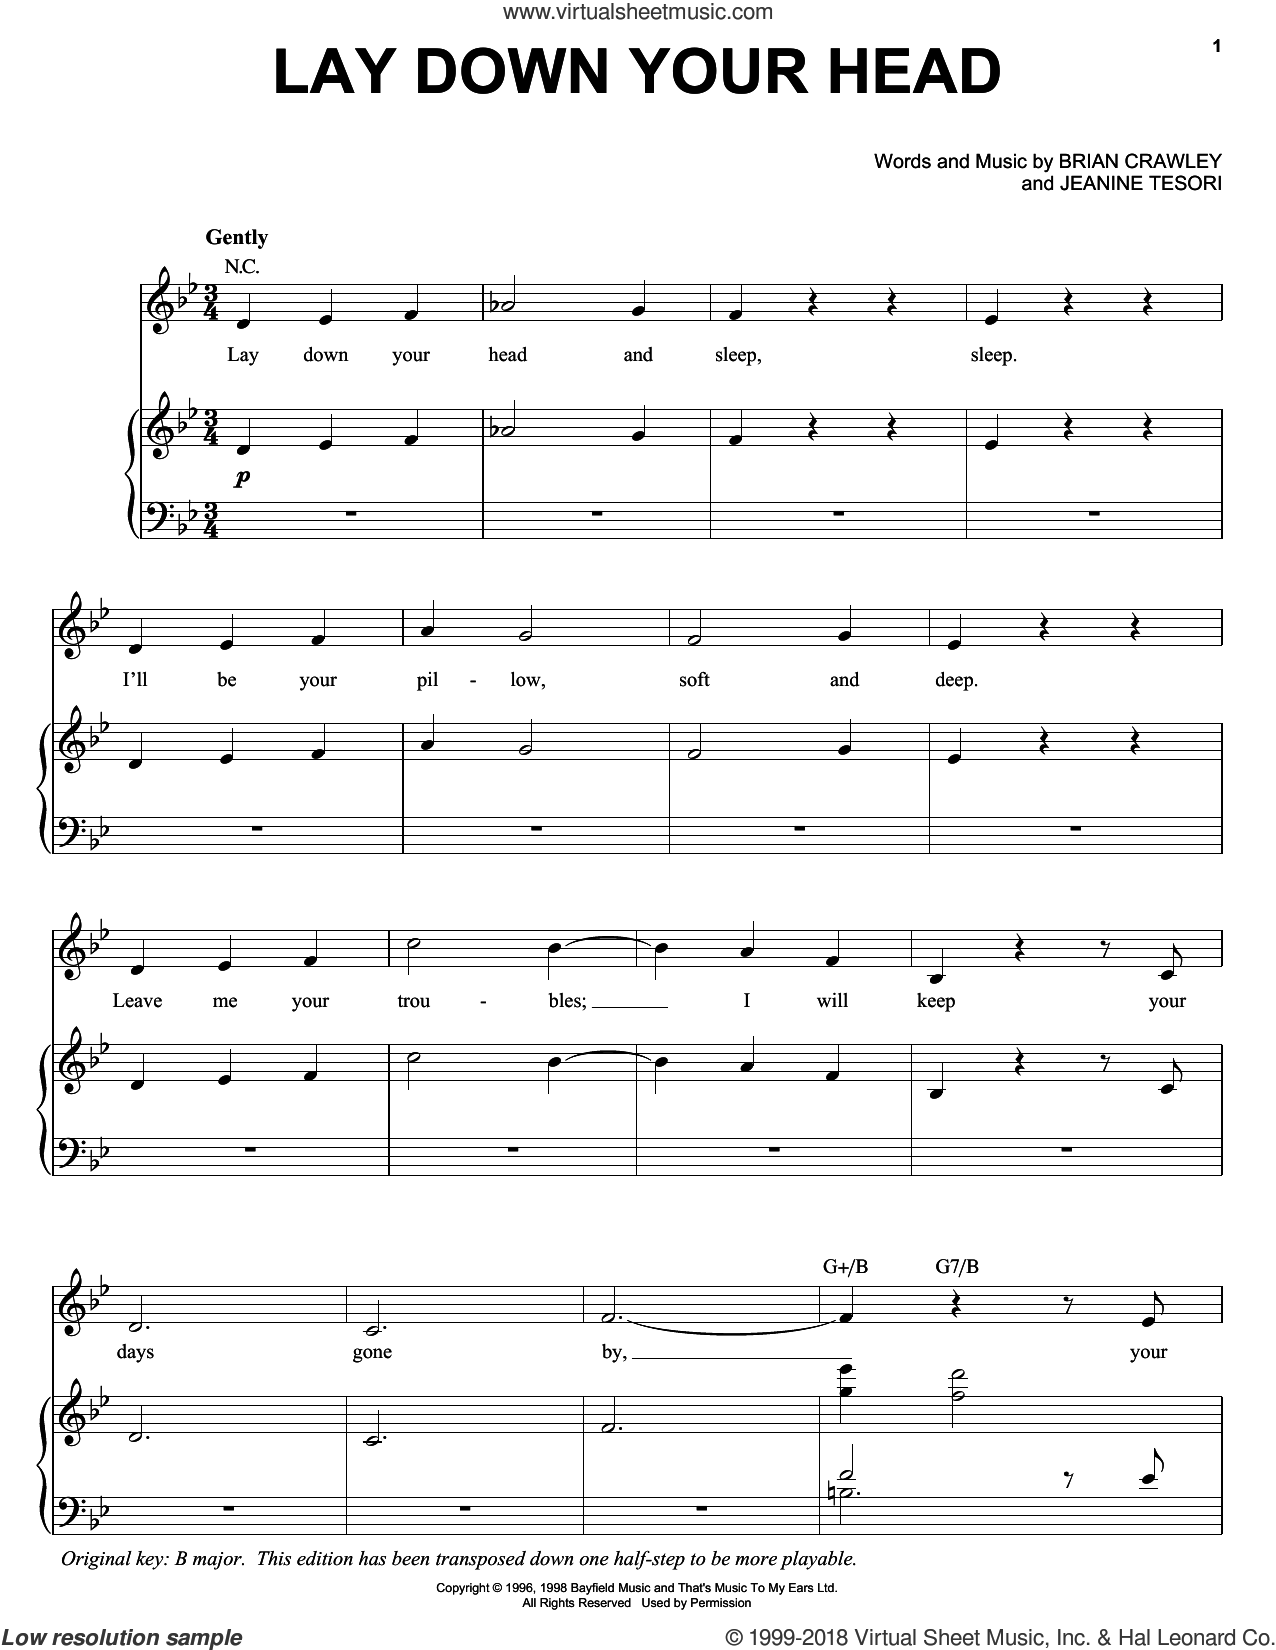 Lay Down Your Head sheet music for voice, piano or guitar by Audra McDonald, Brian Crawley and Jeanine Tesori, intermediate skill level